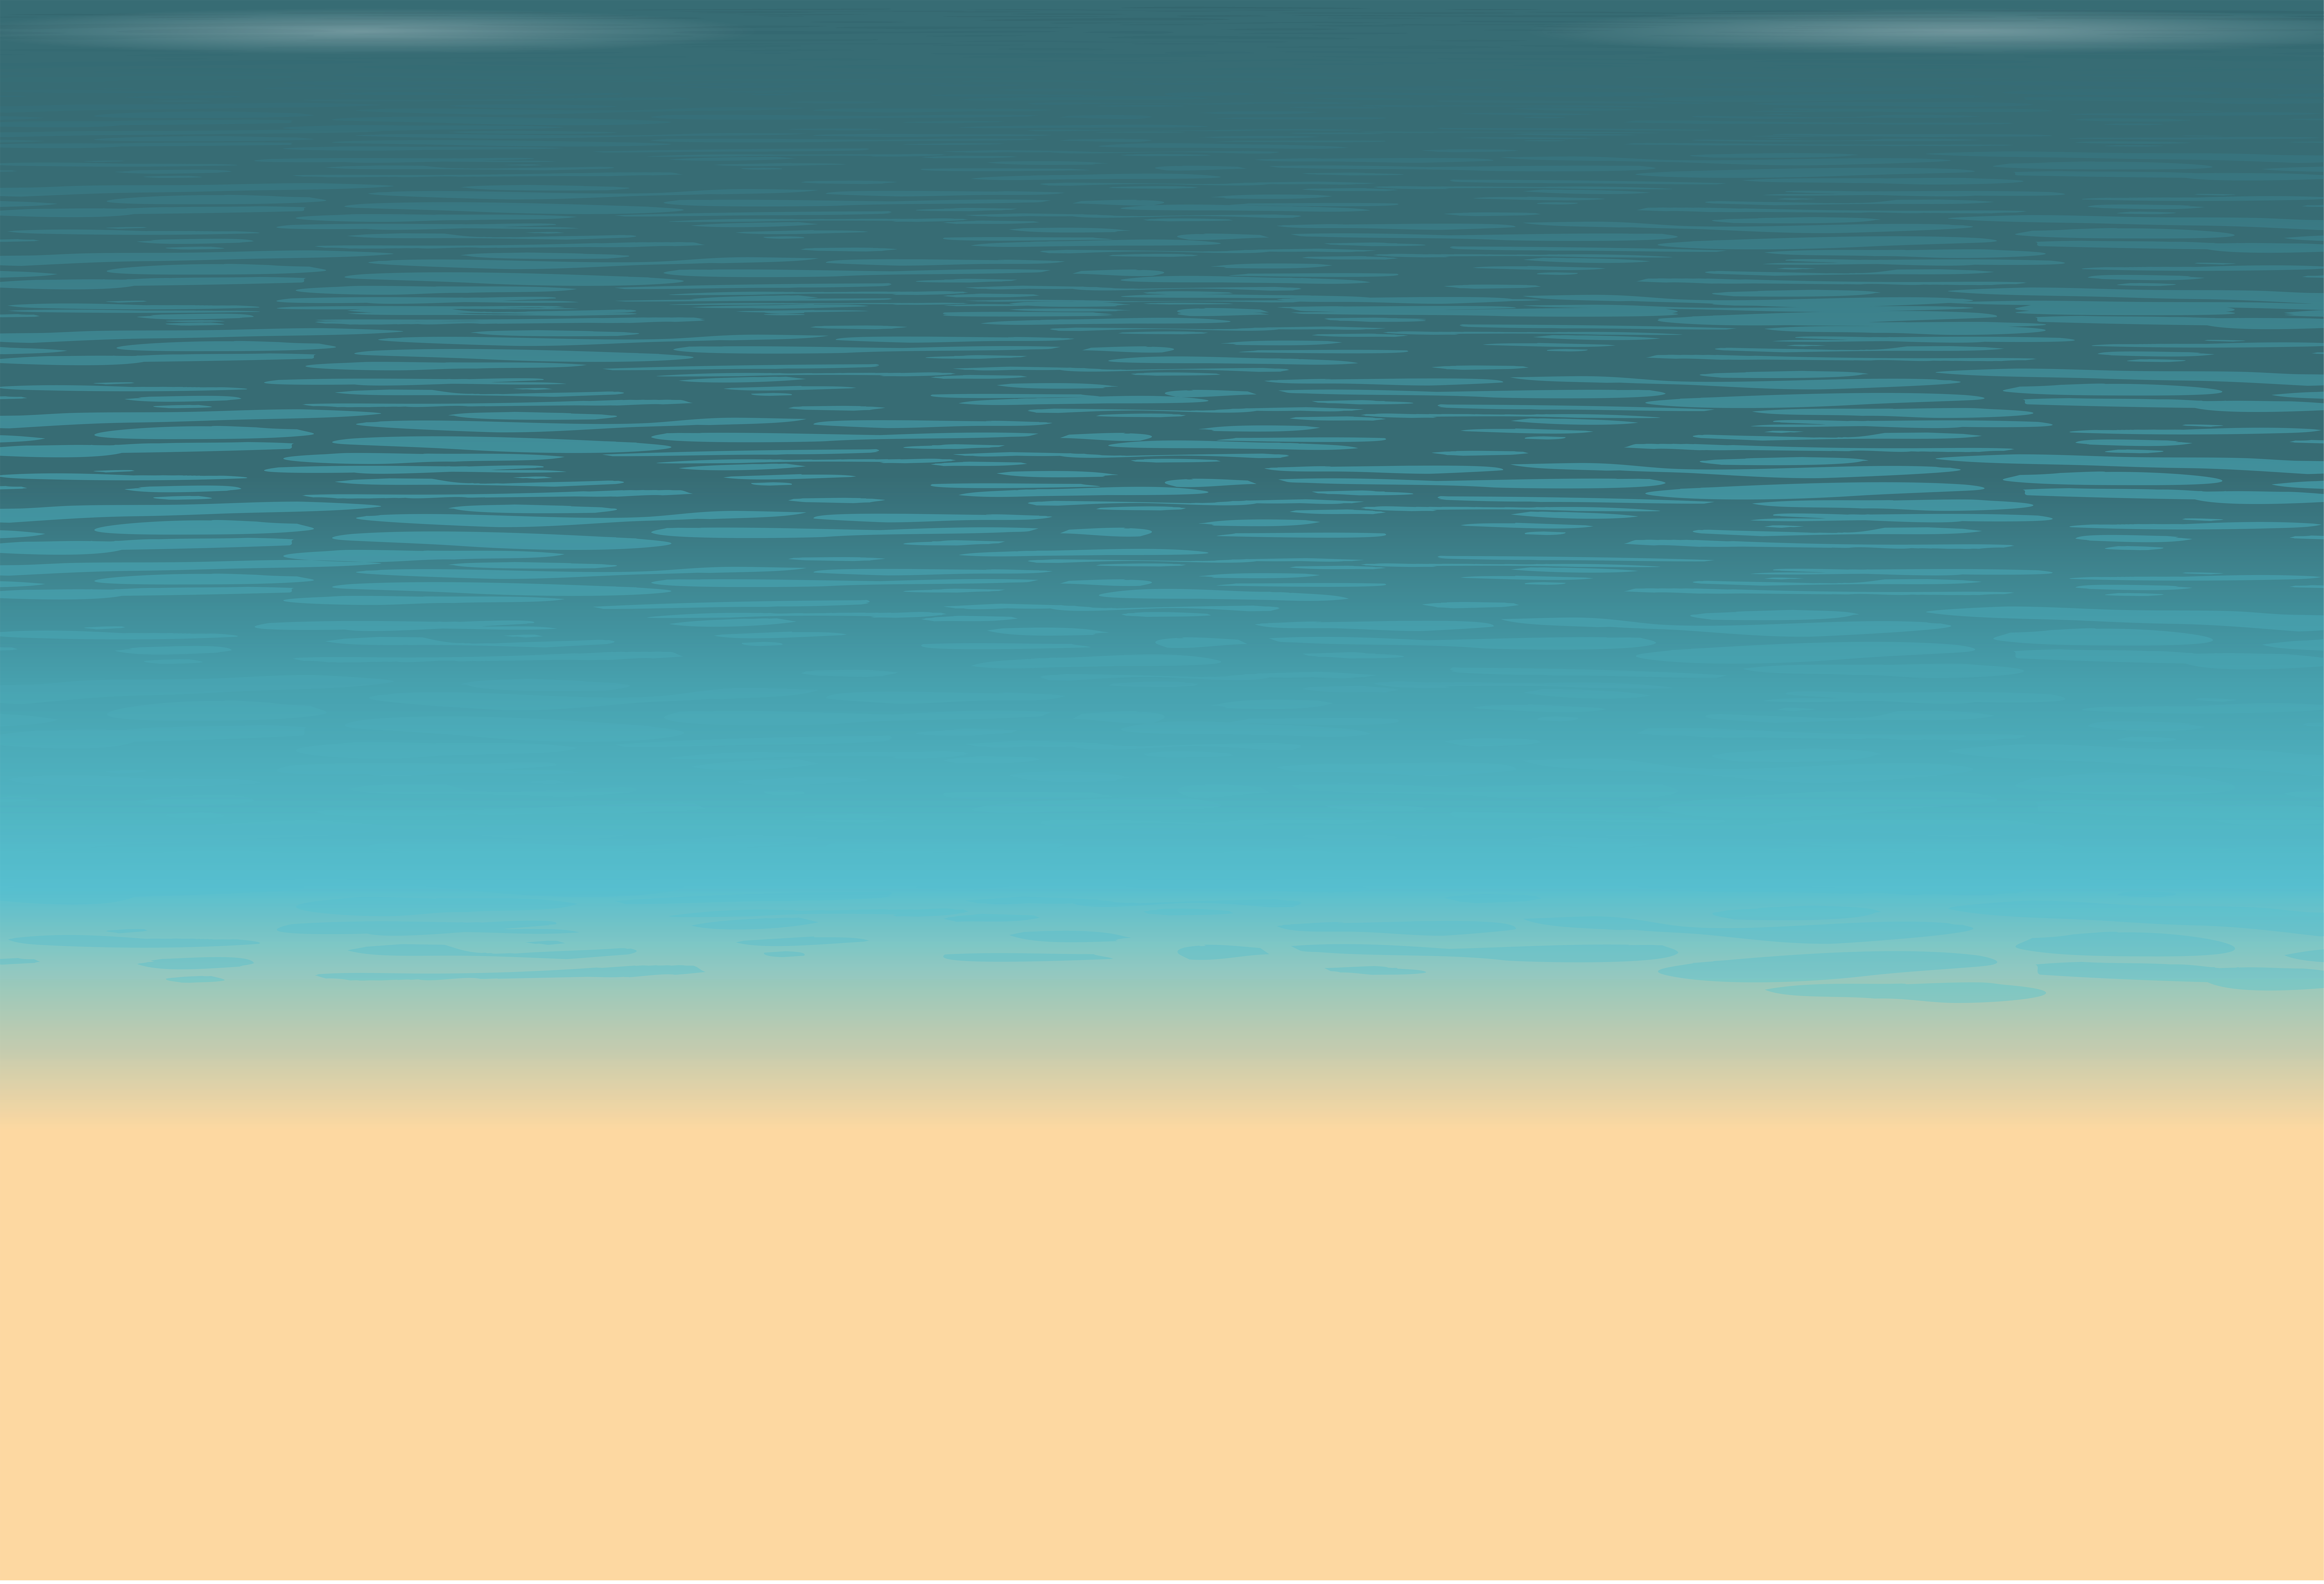 Sea and Sand Ground PNG Clip Art Image.